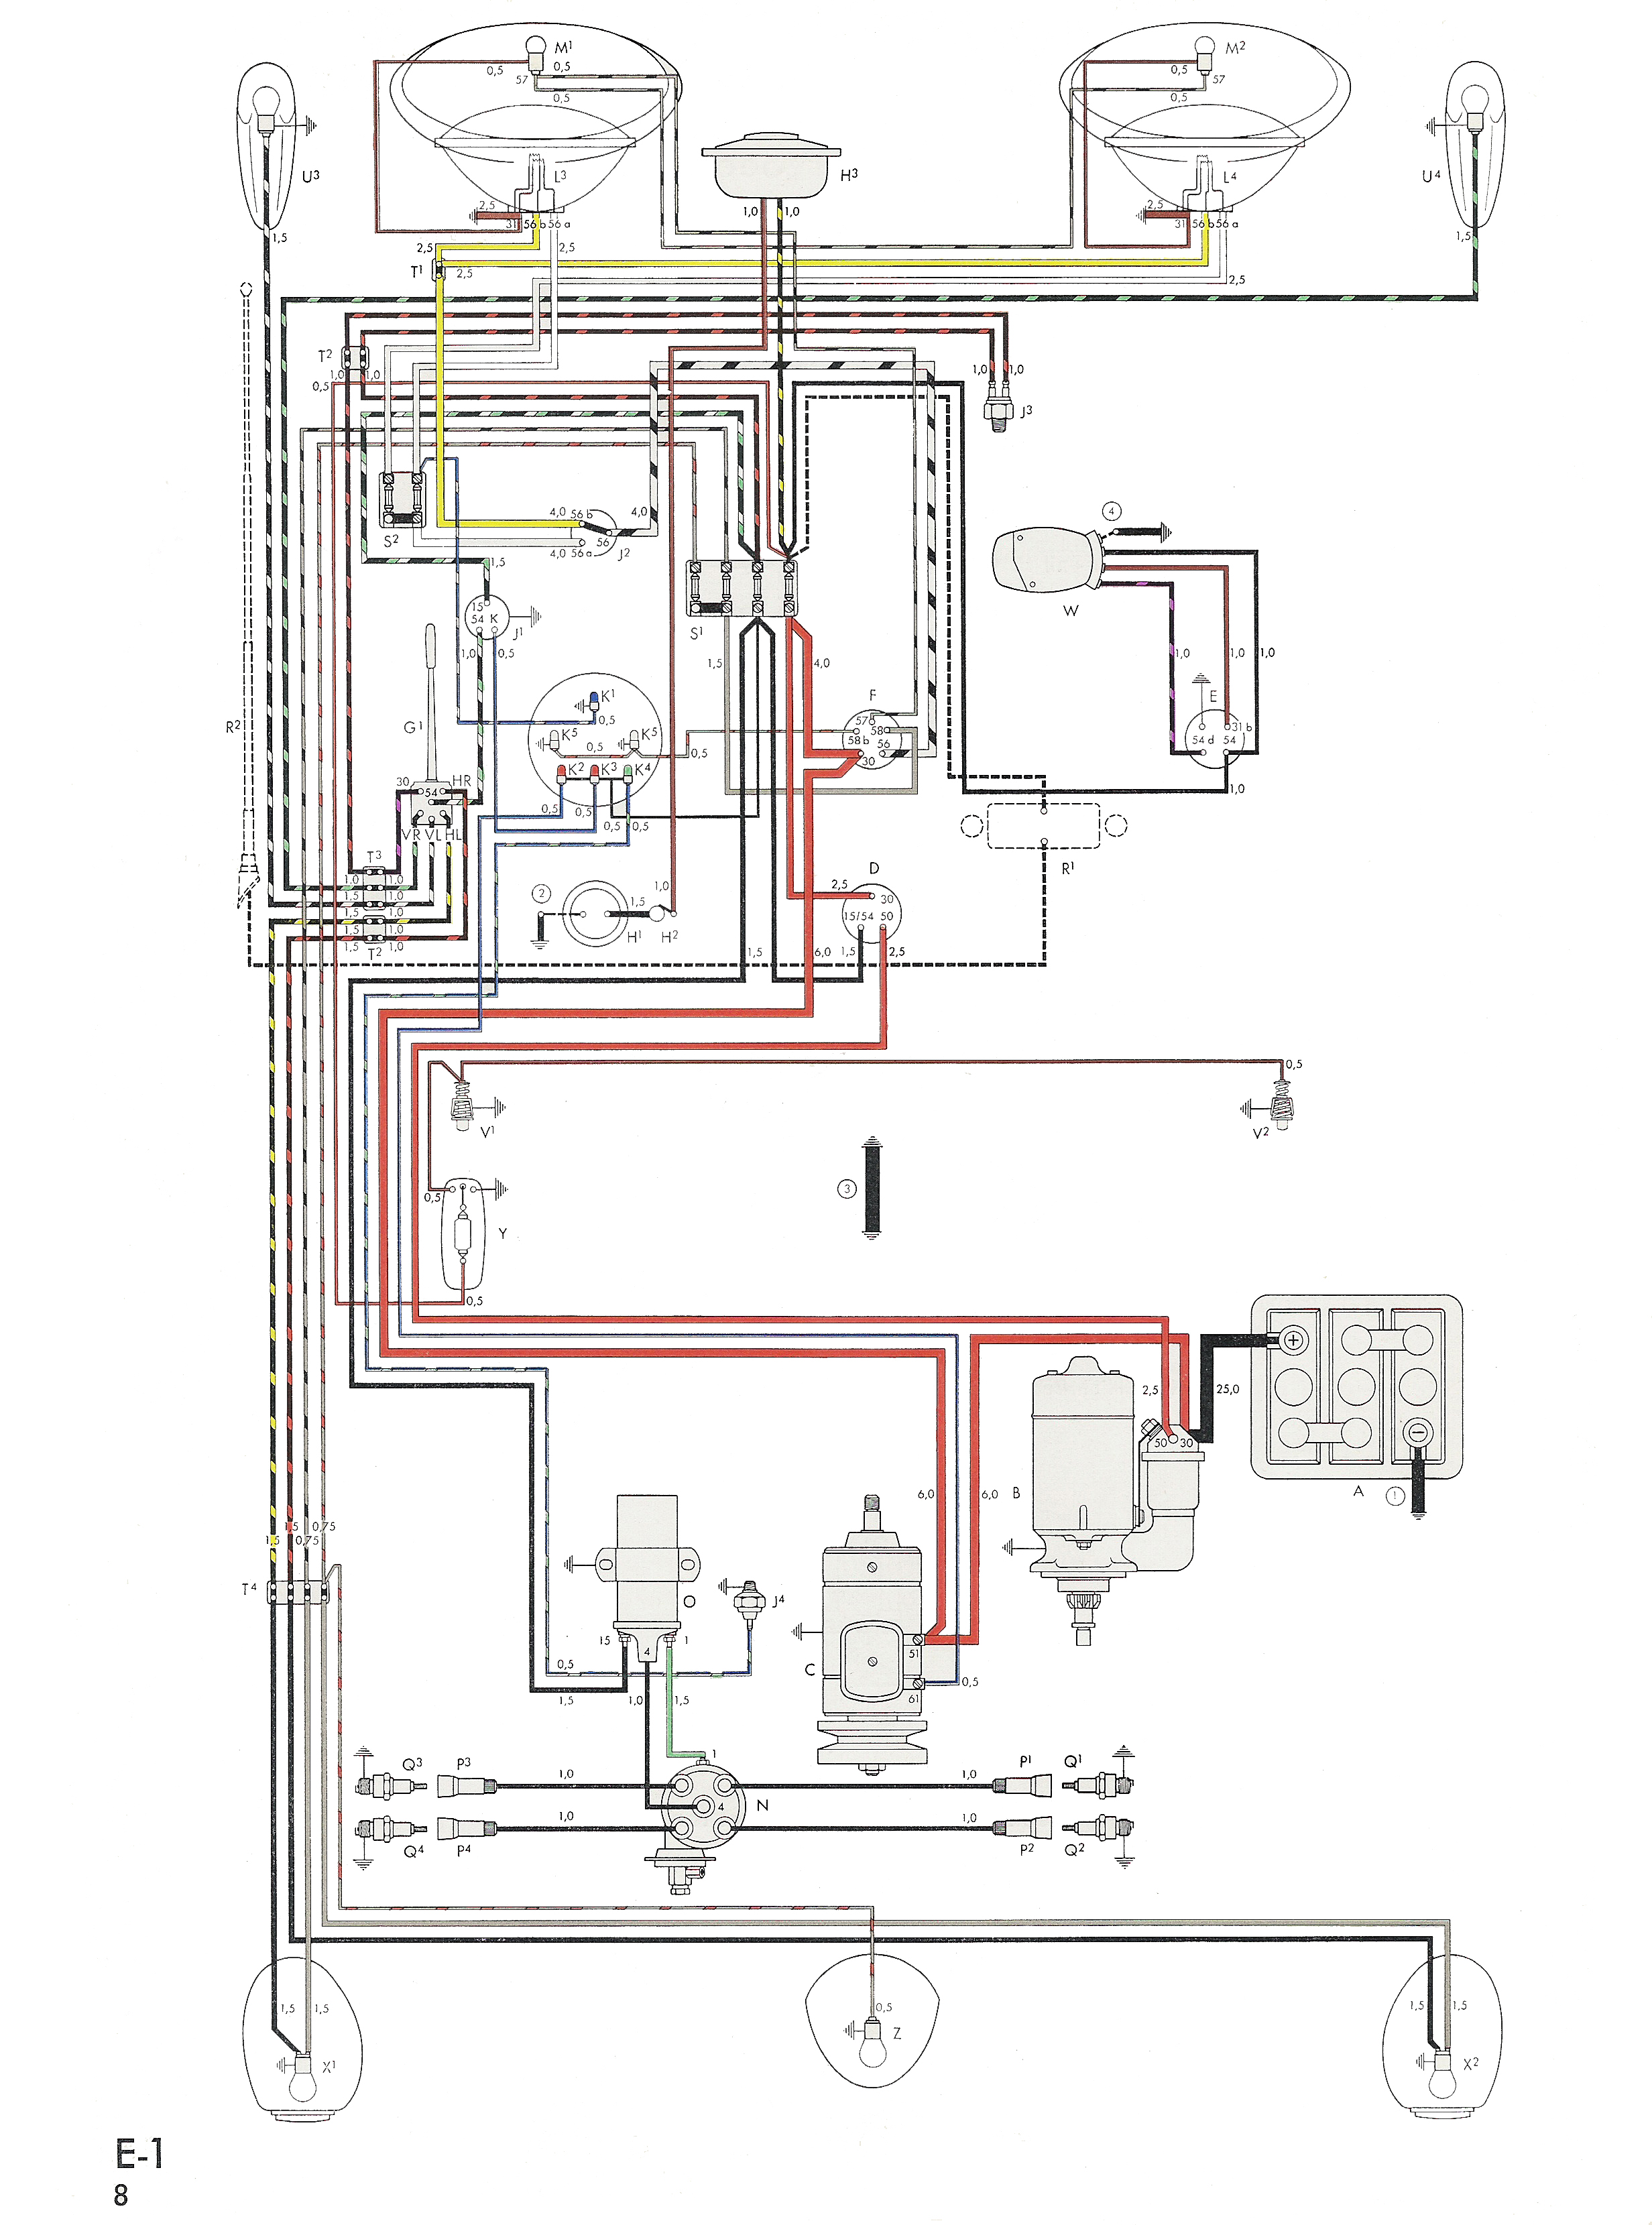 A Fuse Wire Data Wiring Diagrams Toyota T100 3400 4cam Engine Diagram Thesamba Com Type 1 Is Made Of